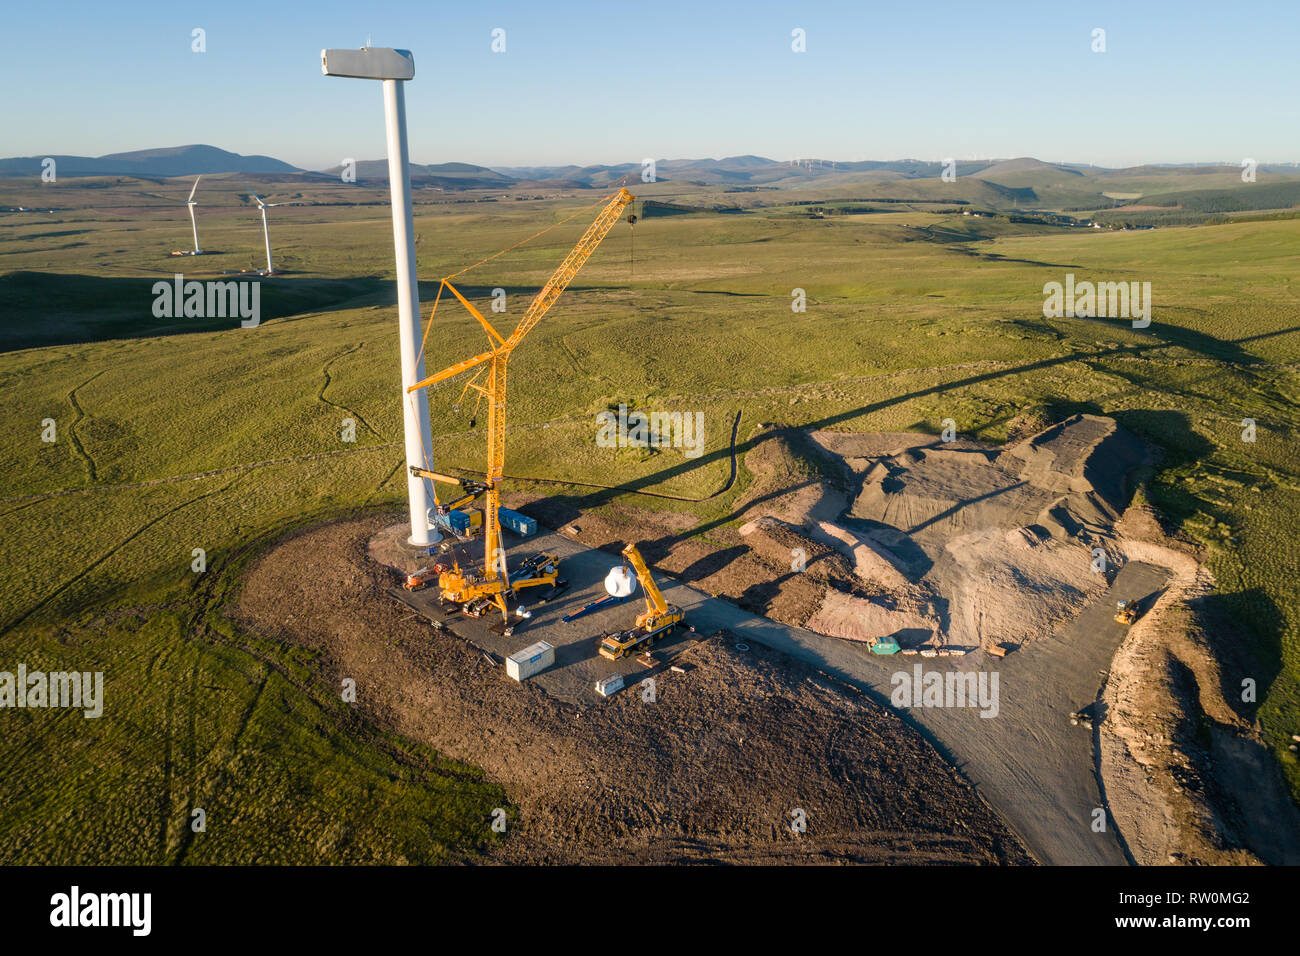 Aerial image showing construction of wind turbines using cranes at Andershaw Wind Farm near Douglas in South Lanarkshire, Southern Scotland. - Stock Image